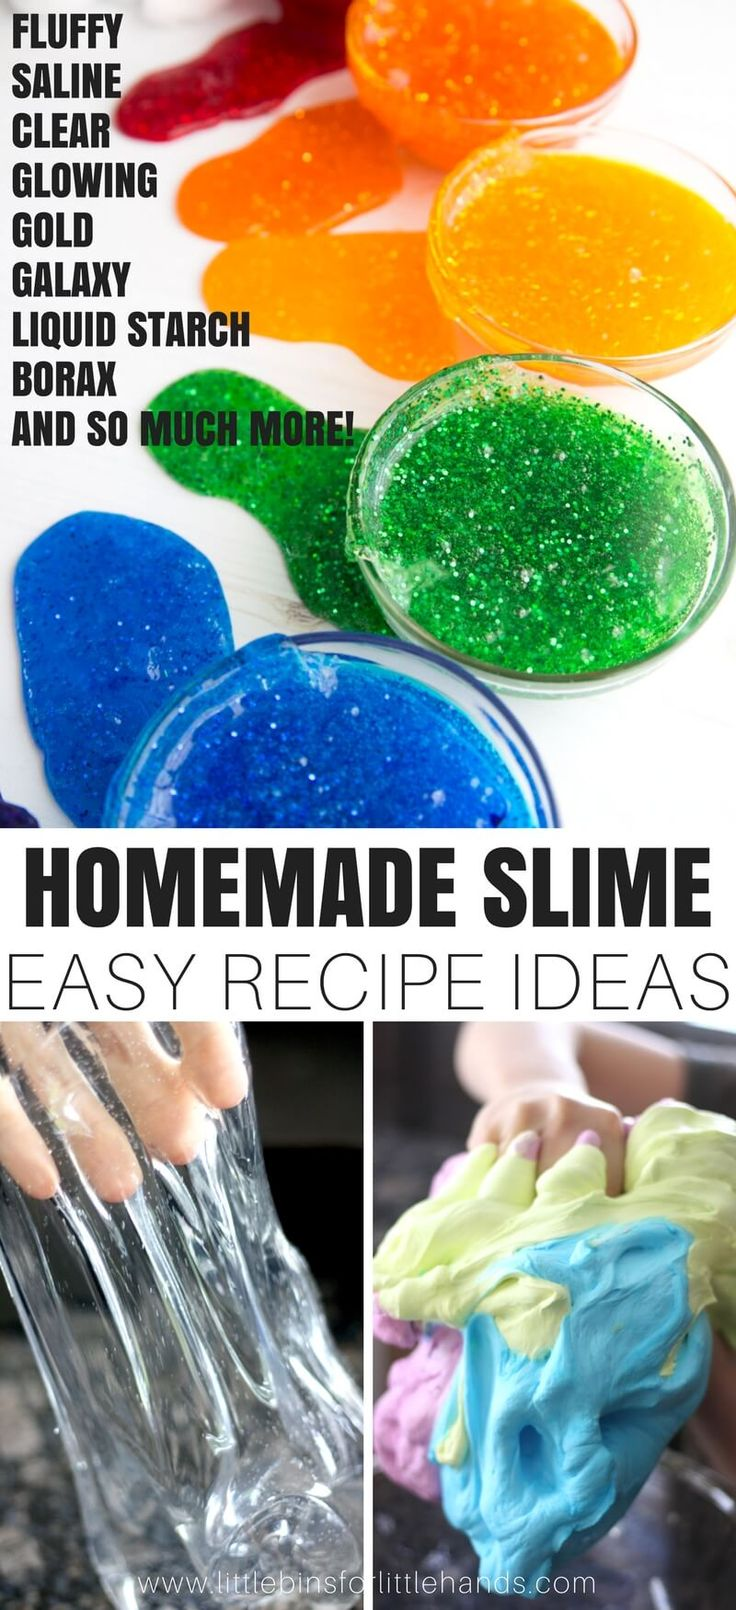 The BEST EVER Homemade Slime Recipe Ideas to make with kids.**Explains the science**